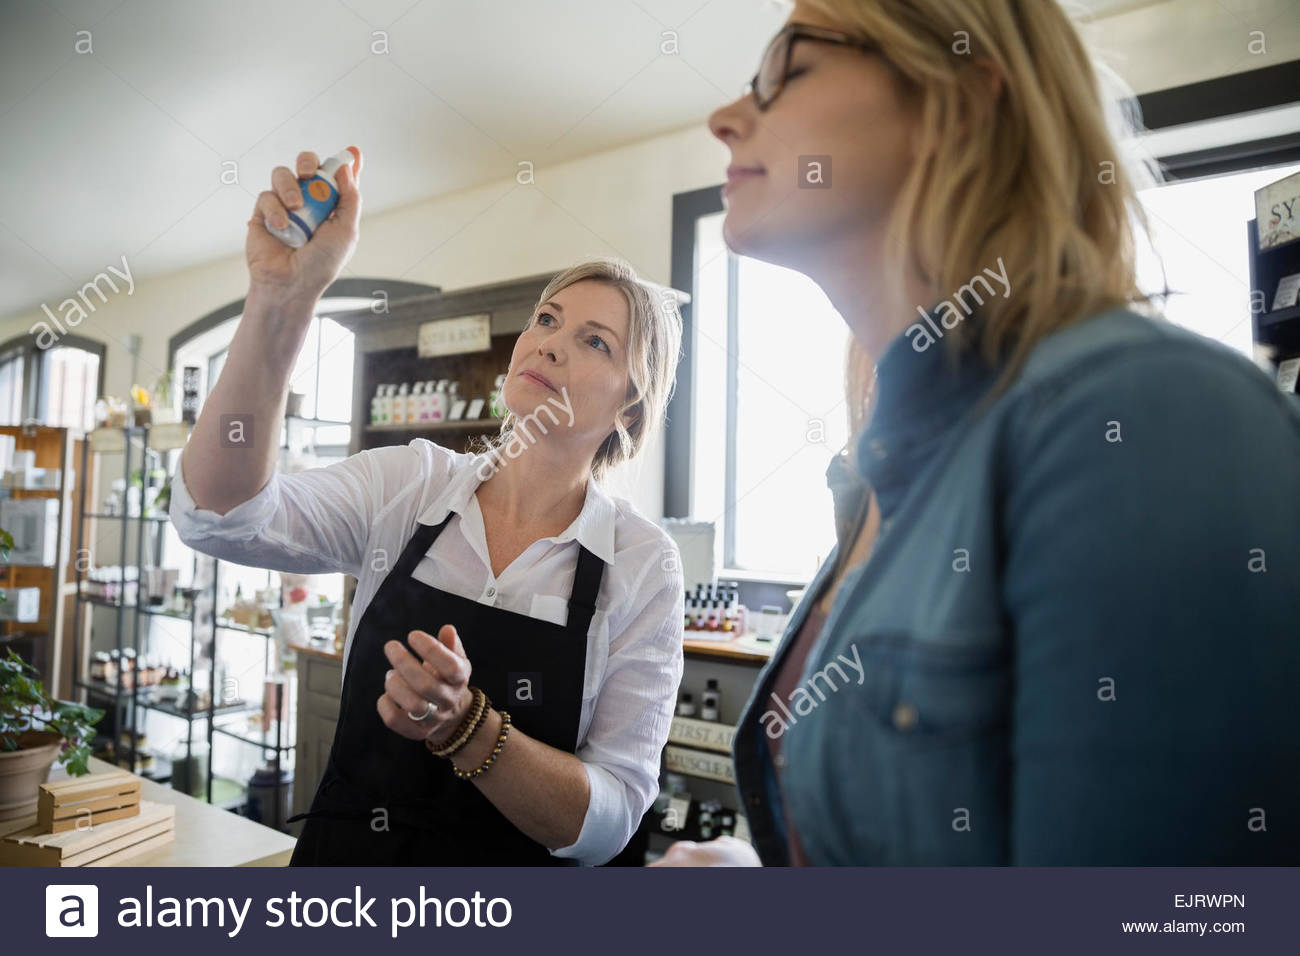 Apothecary shop owner spraying essential oils for woman - Stock Image